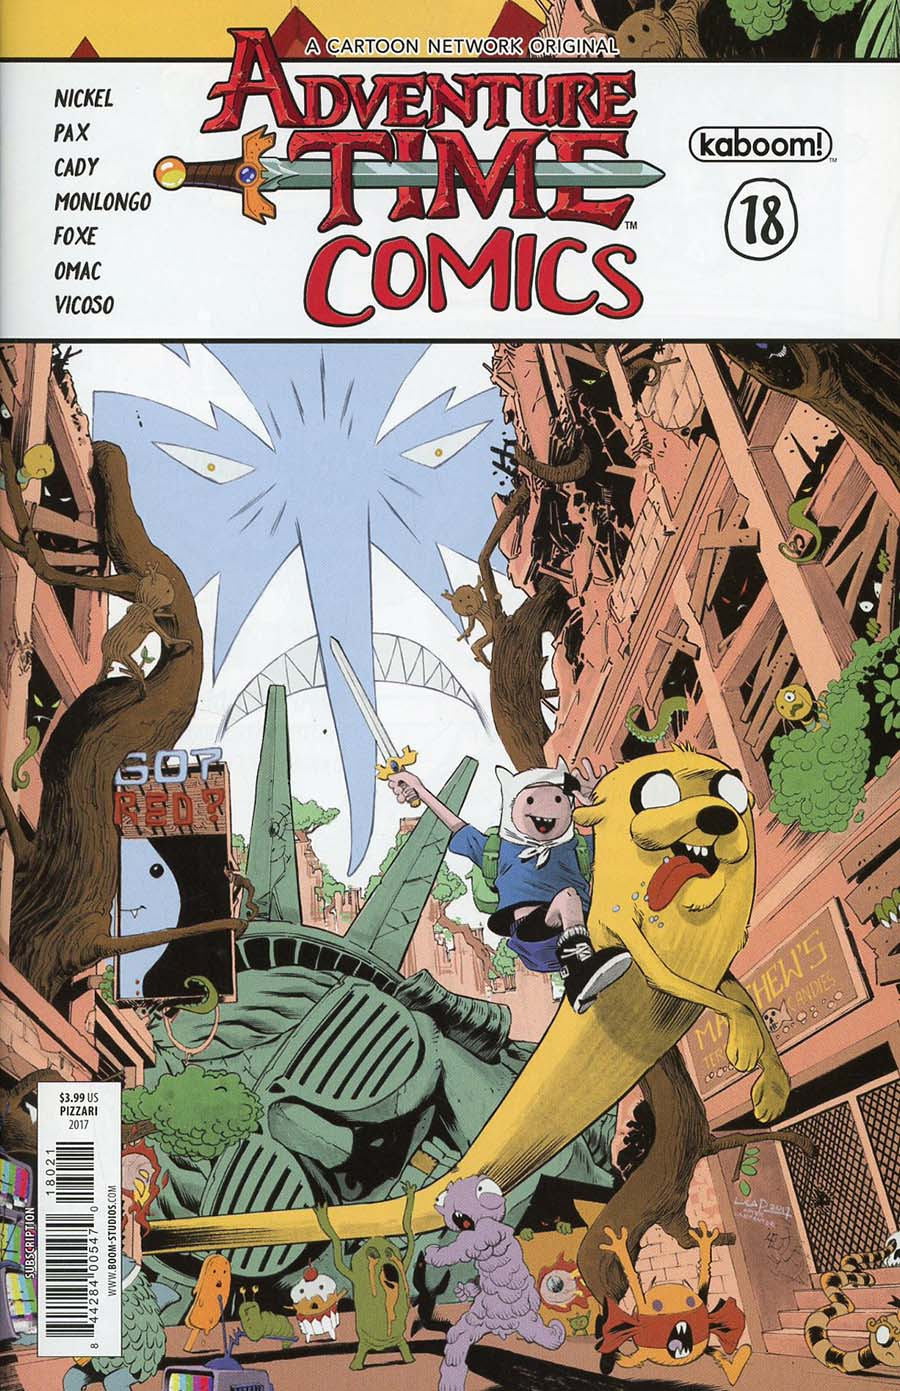 Adventure Time Comics #18 Cover B Variant Luca Pizarri Subscription Cover